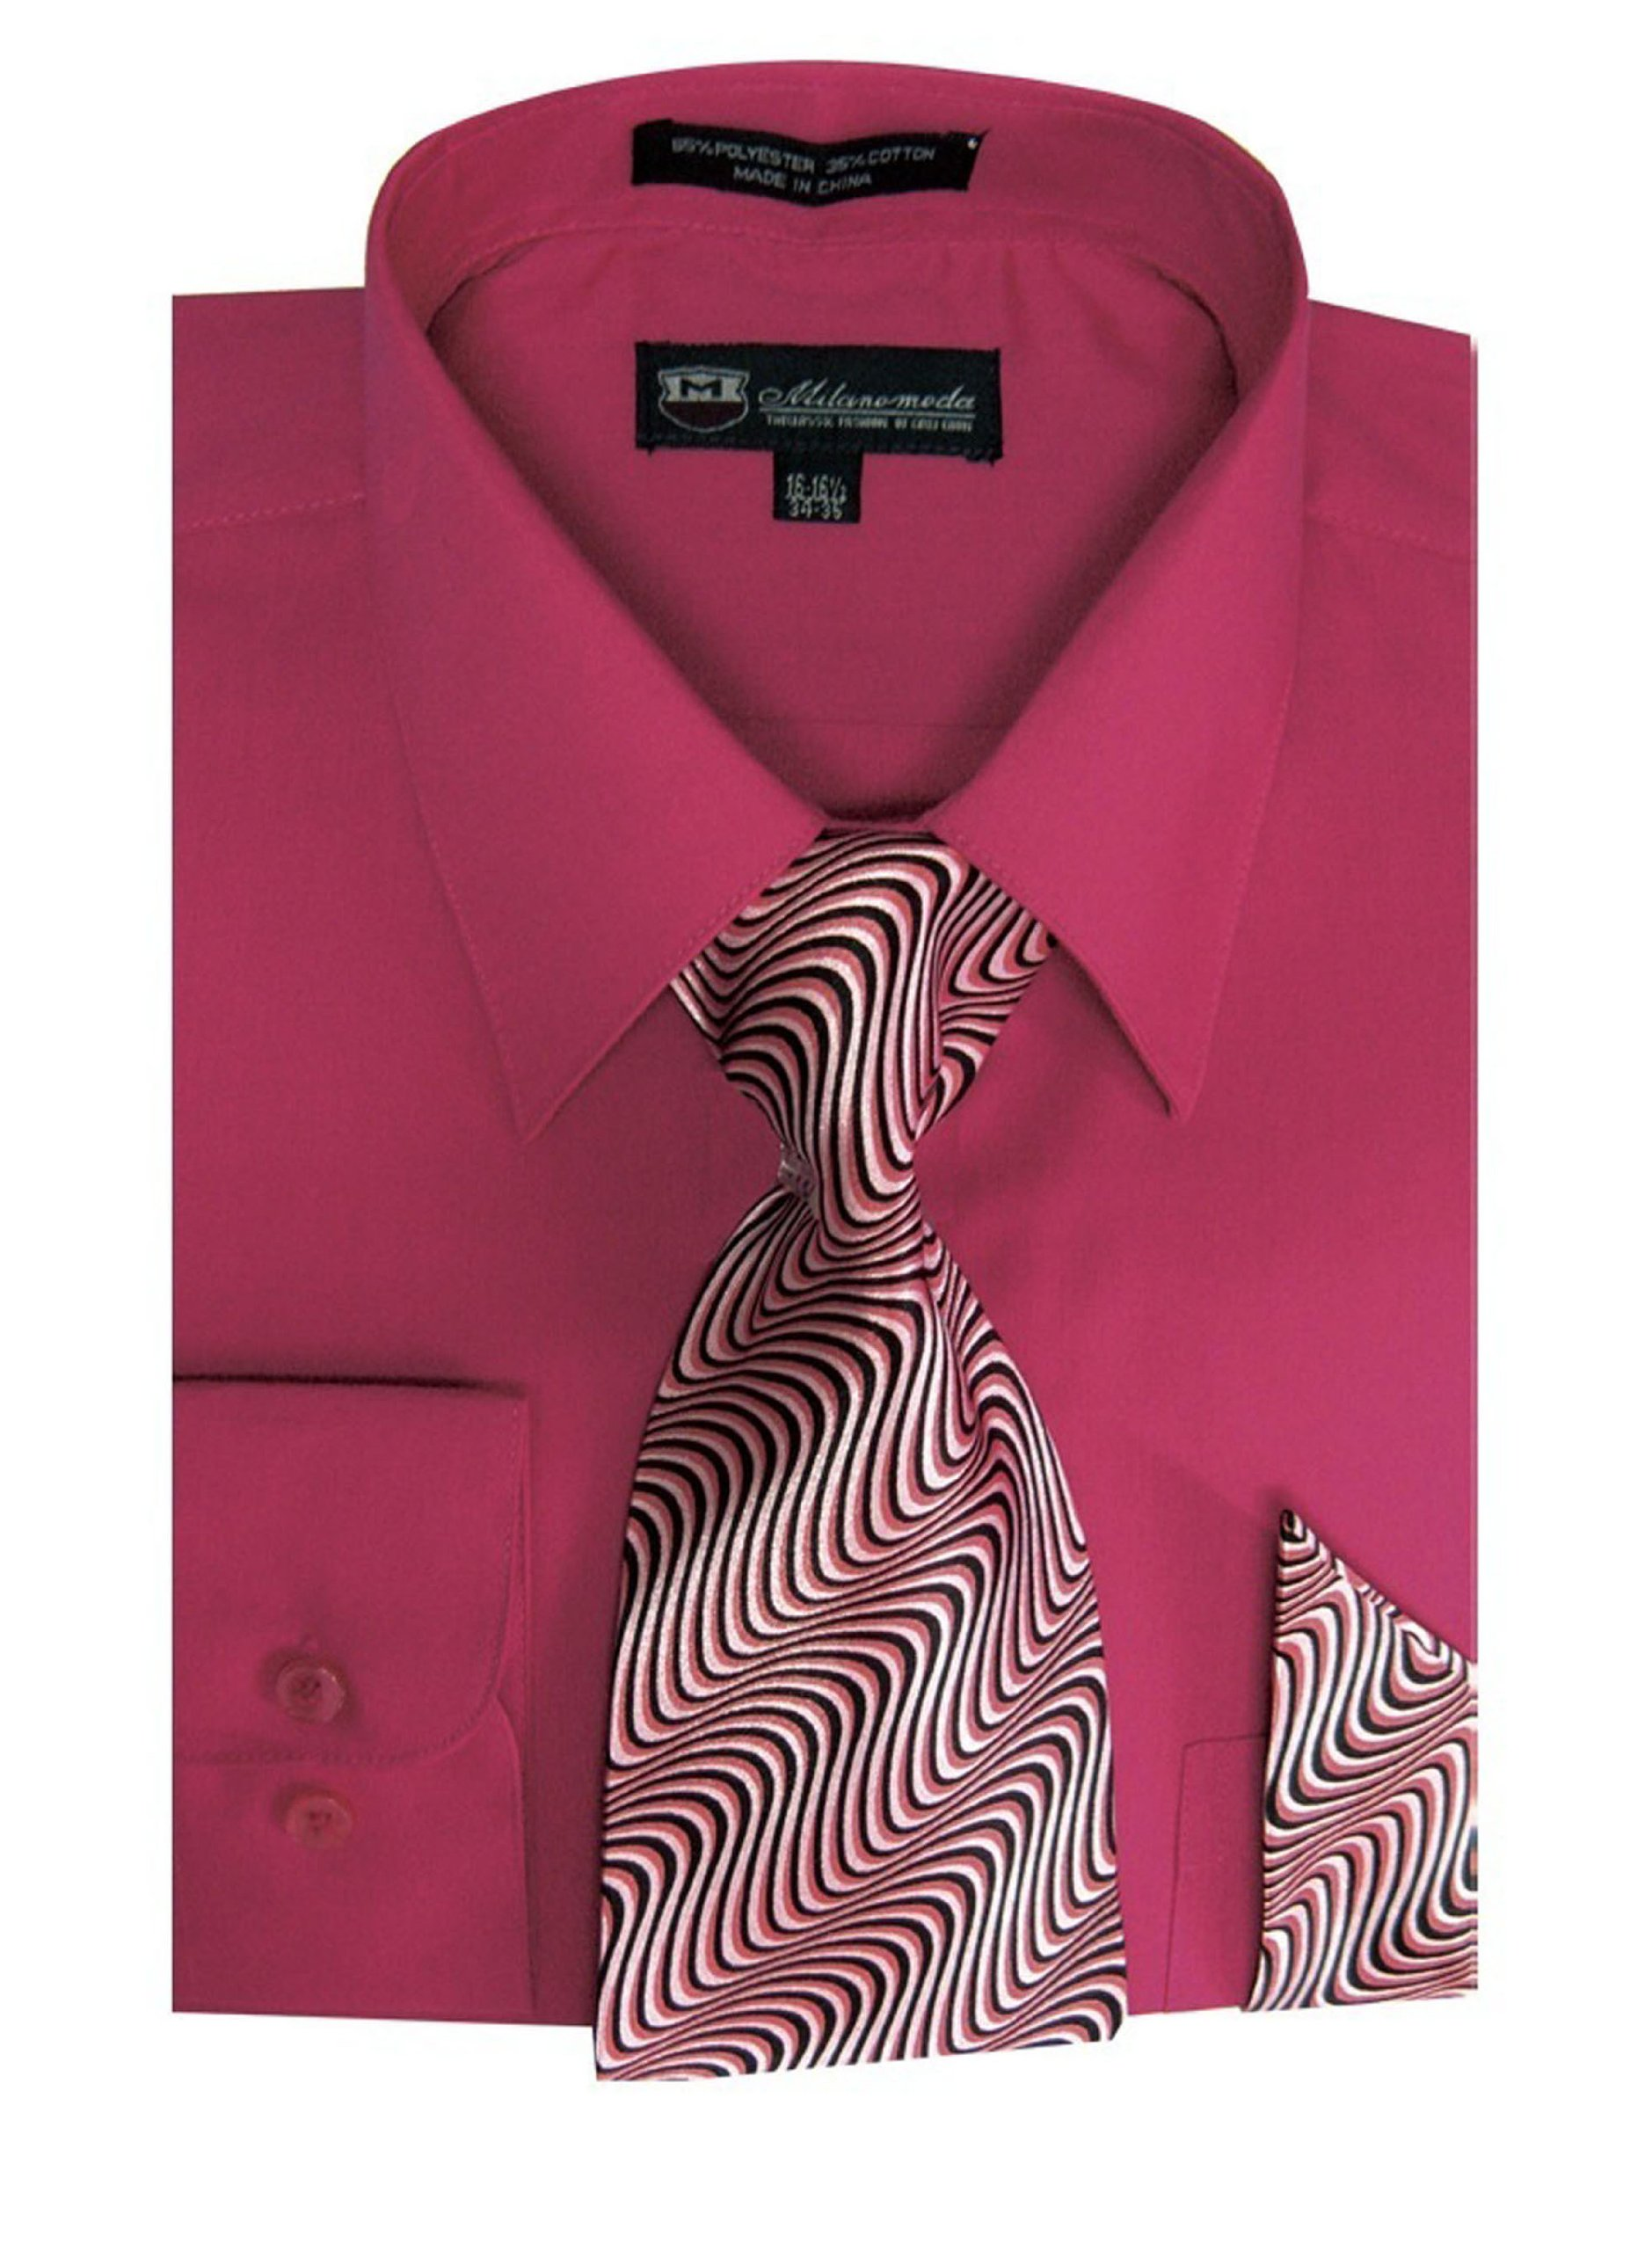 TDC Collection Men's Basic Dress Shirt With Matching Tie And Handkerchief 18-18 1/2 36-37 Fushion